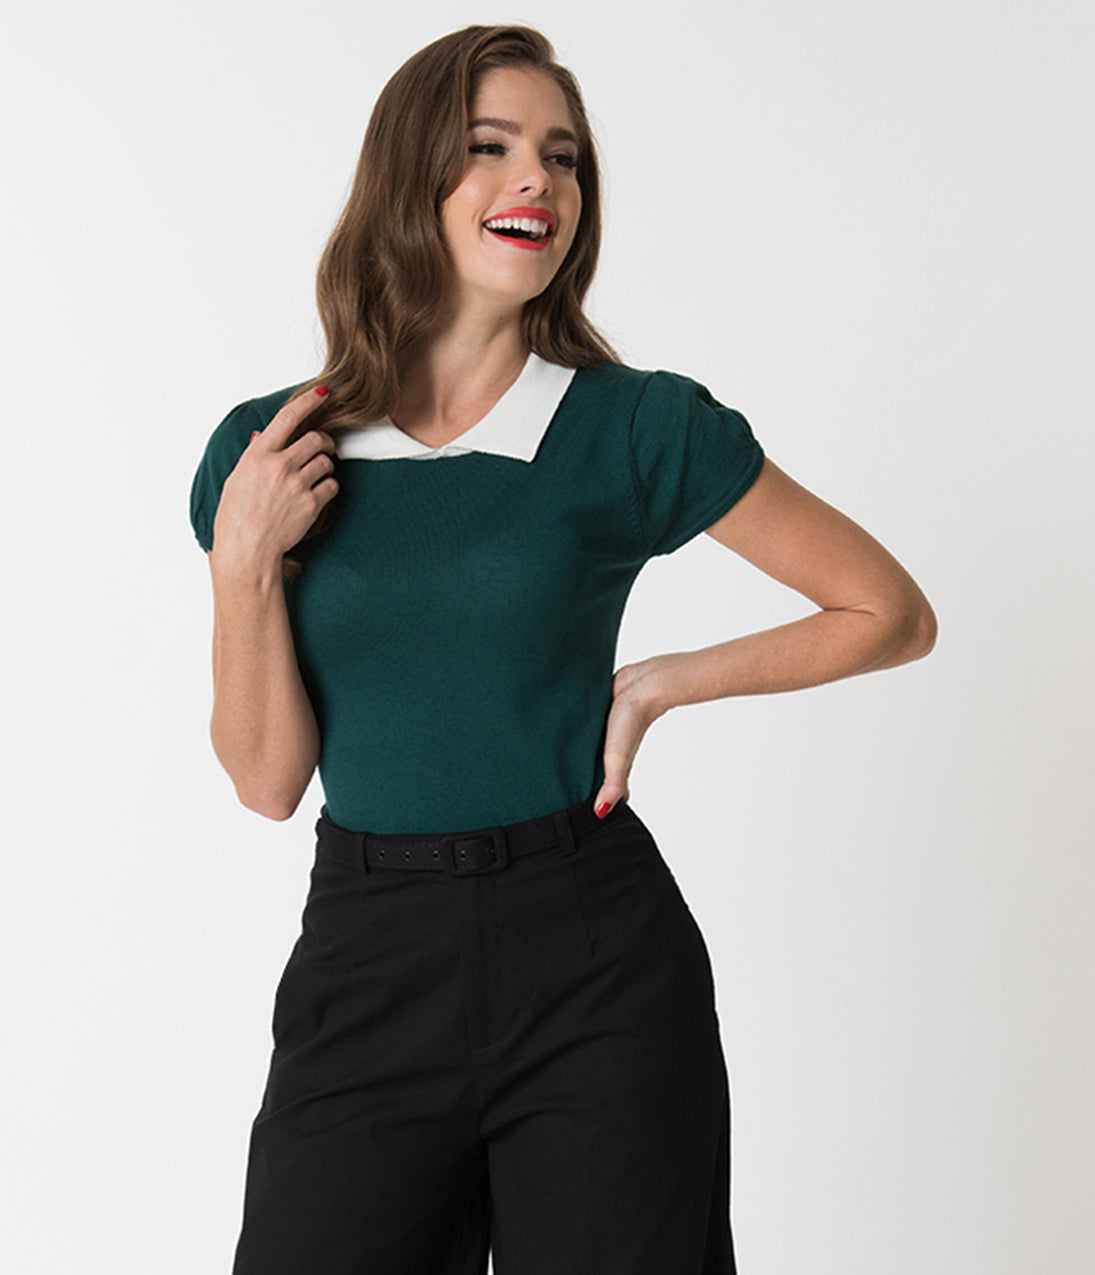 1940s Blouses and Tops Vintage Style Peacock Green  Ivory Collar Short Sleeve Sweater Knit Top $32.00 AT vintagedancer.com